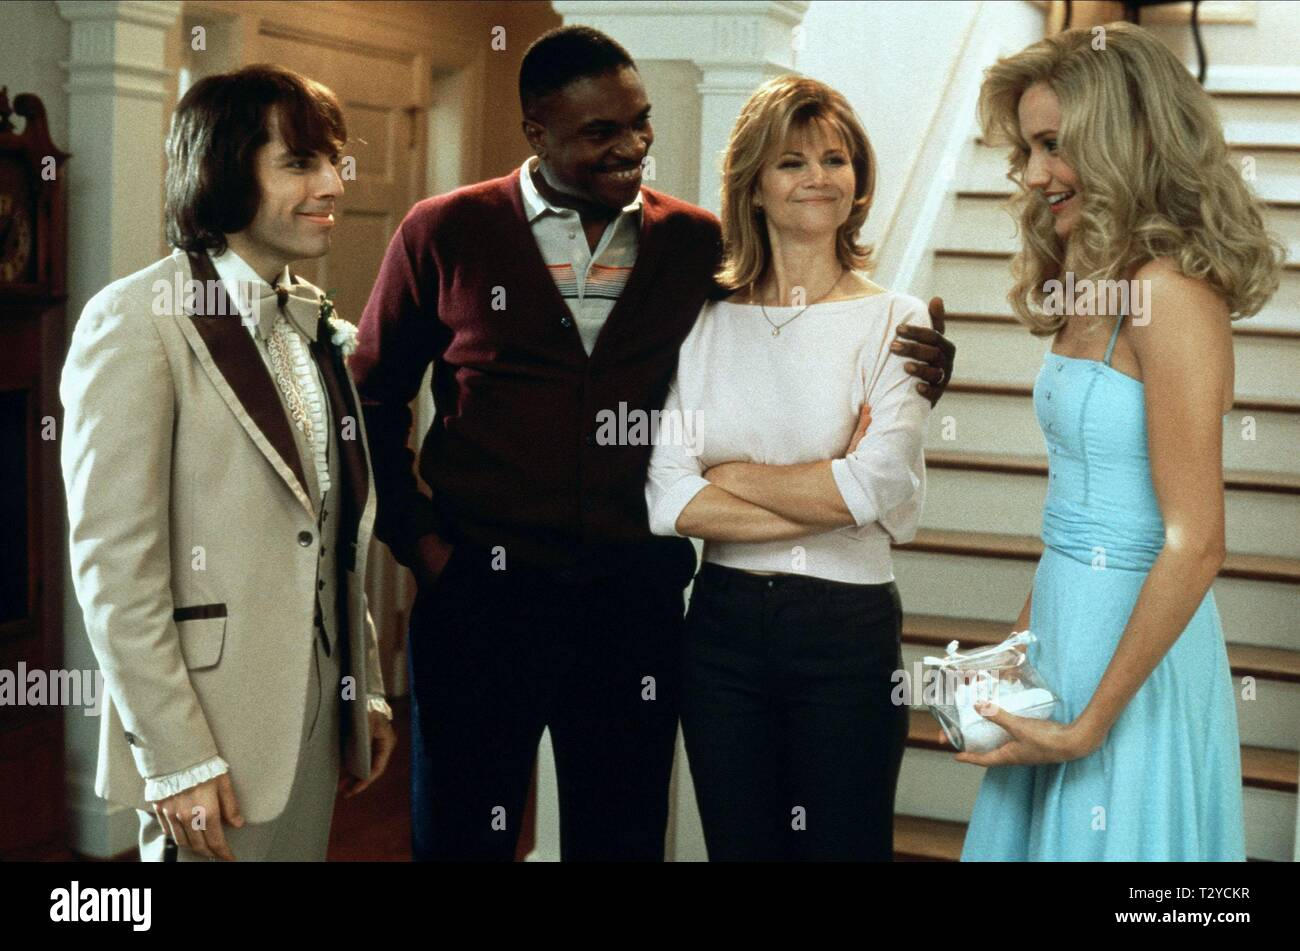 THERE'S SOMETHING ABOUT MARY, BEN STILLER, KEITH DAVID, MARKIE POST , CAMERON DIAZ, 1998 - Stock Image